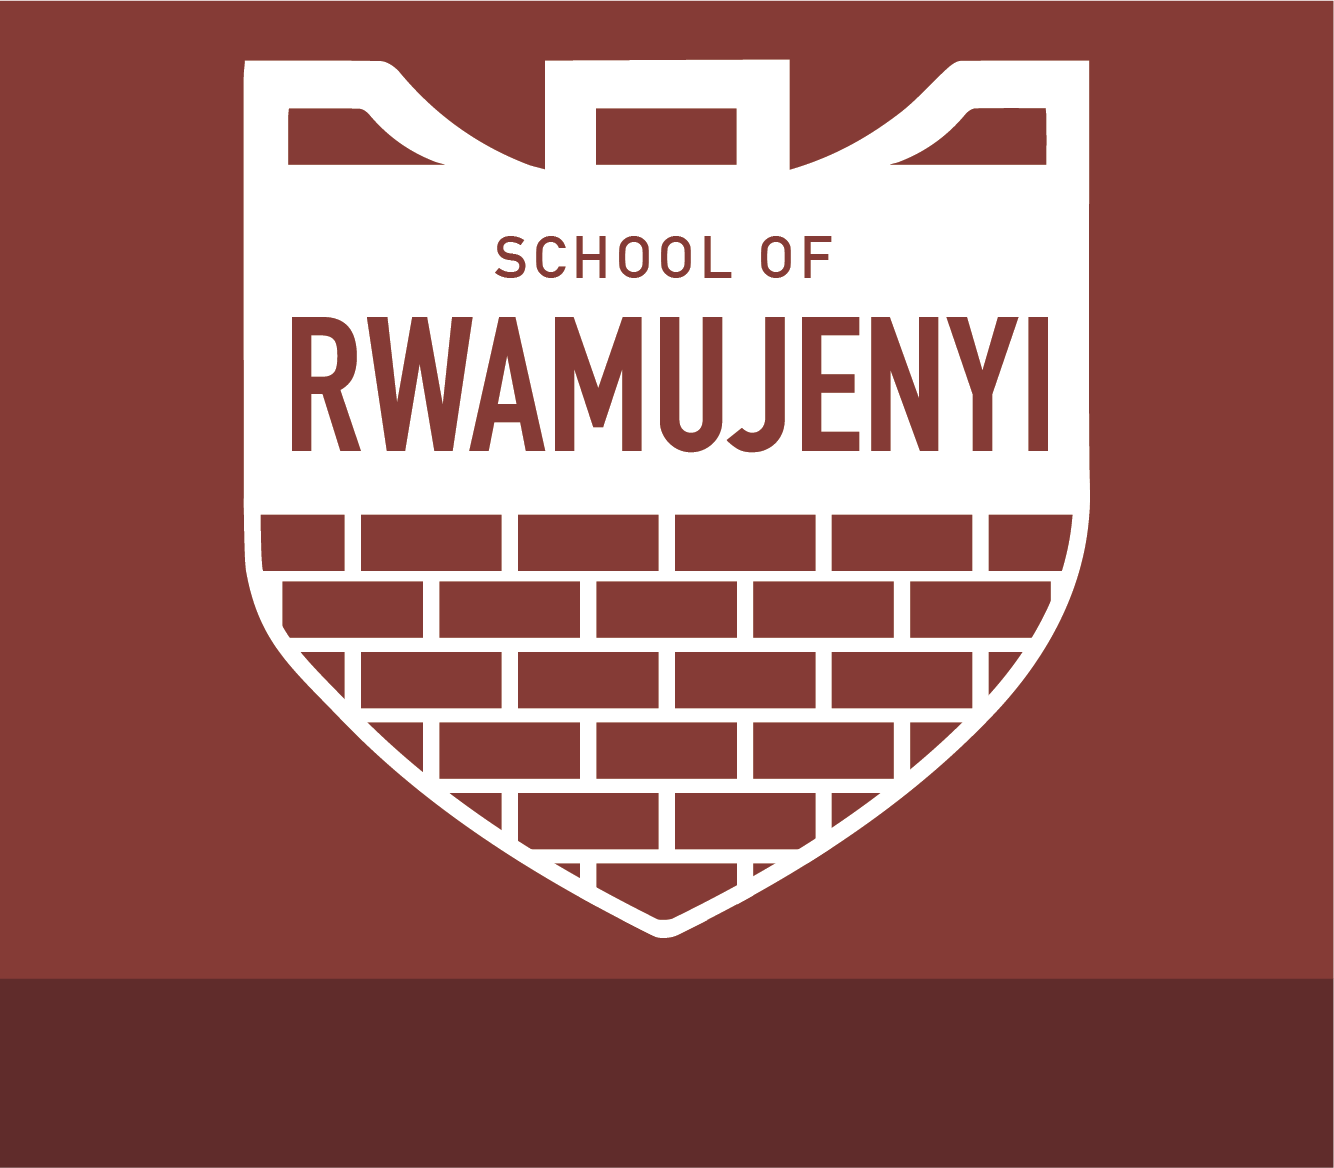 School of rwamujenyi